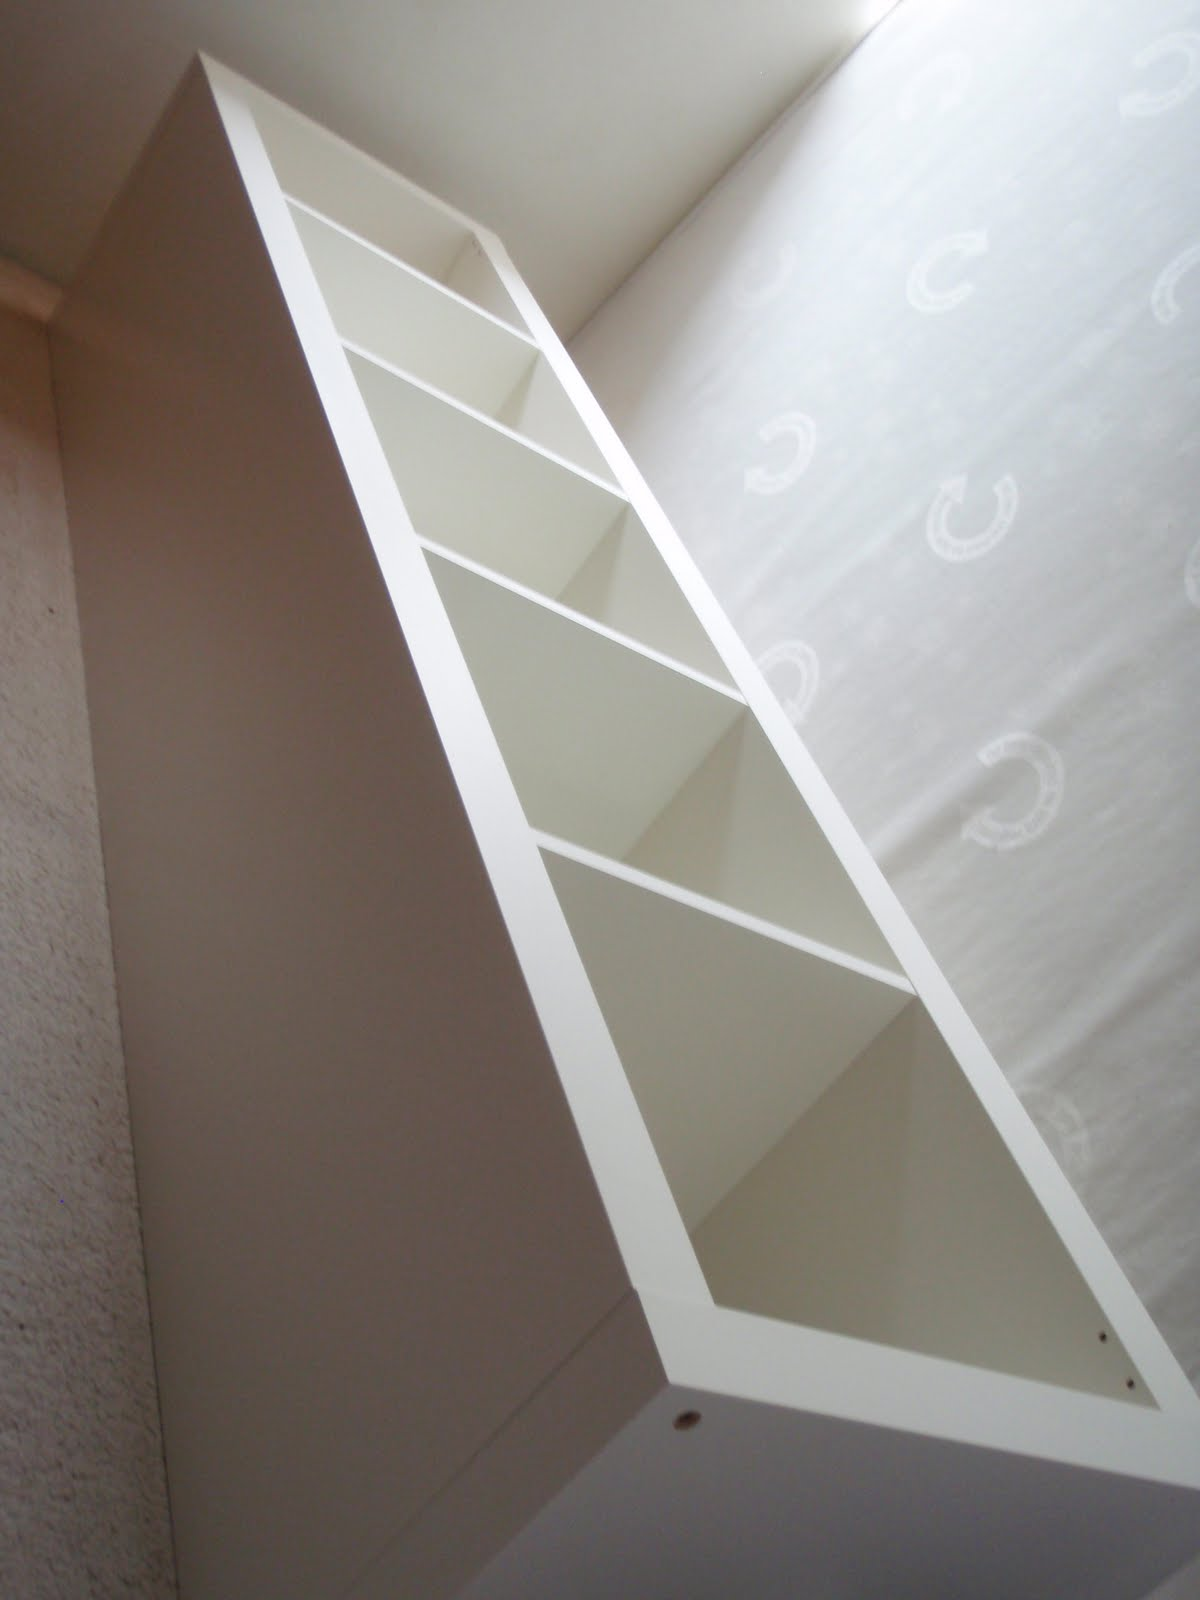 expedit re-purposed as bed frame for maximum storage - ikea